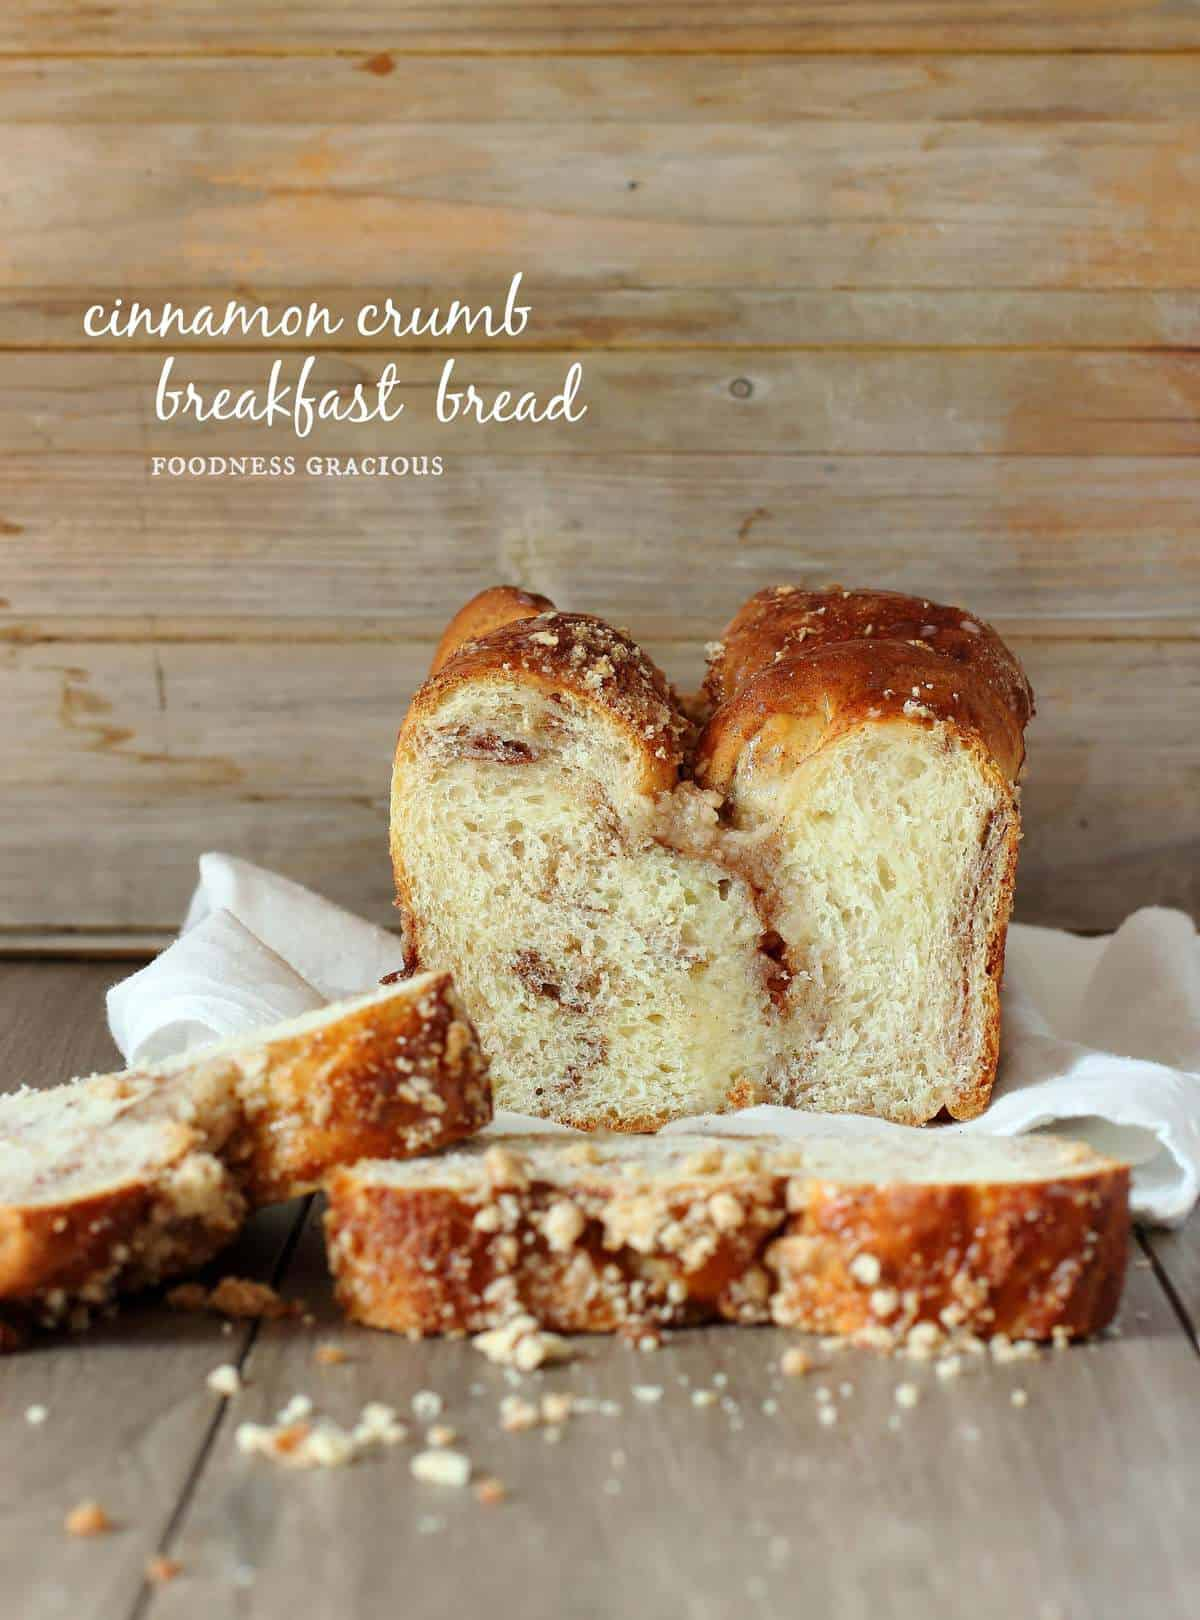 Make your own homemade breakfast bread loaded with cinnamon and topped with buttery crumbs!